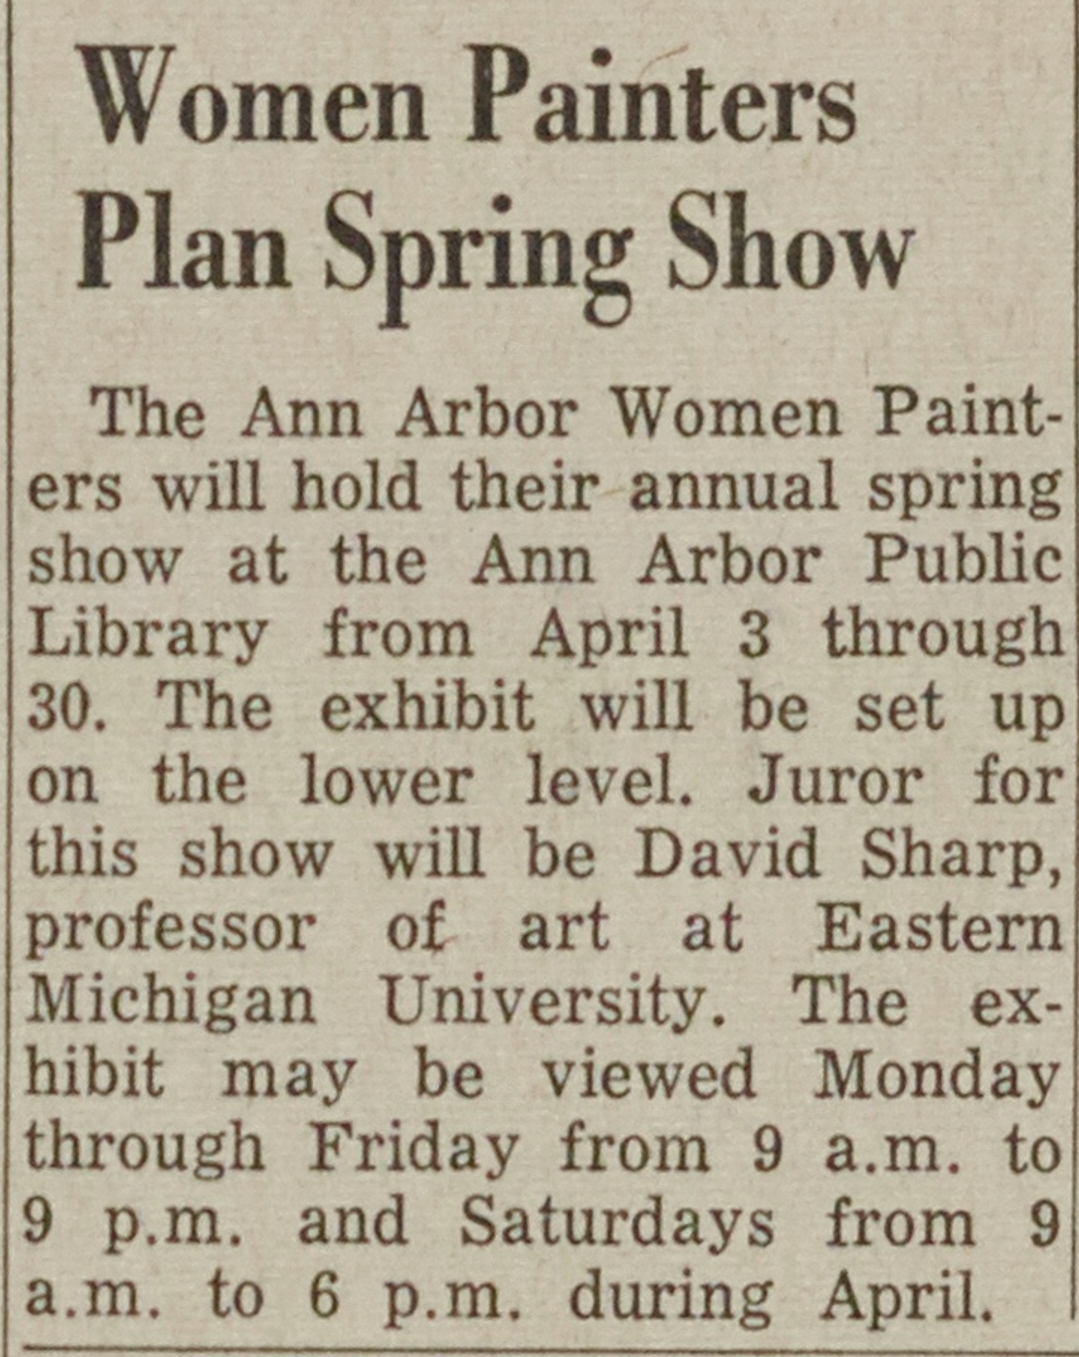 Women Painters Plan Spring Show image